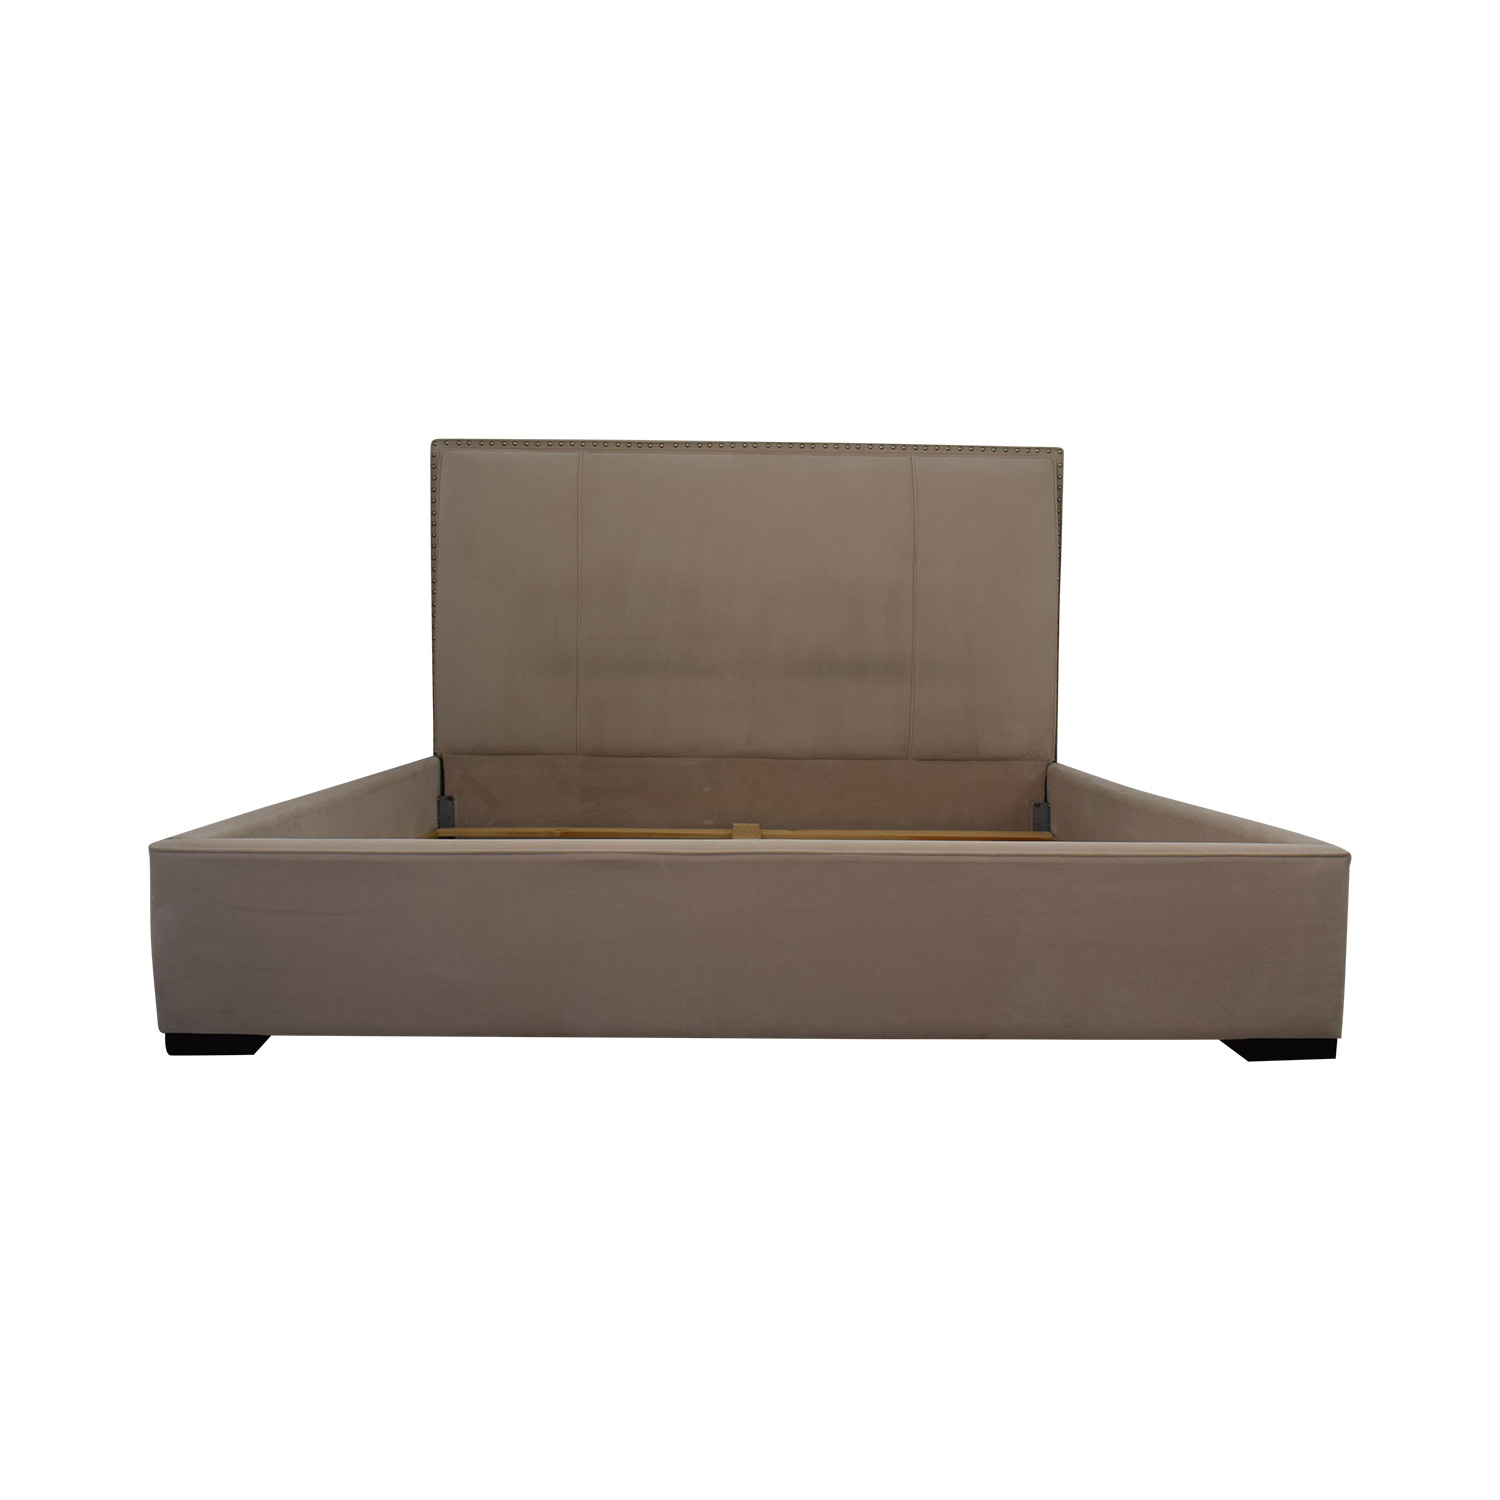 buy Macy's Beige Microfiber Nailhead King Bed Frame Macy's Beds